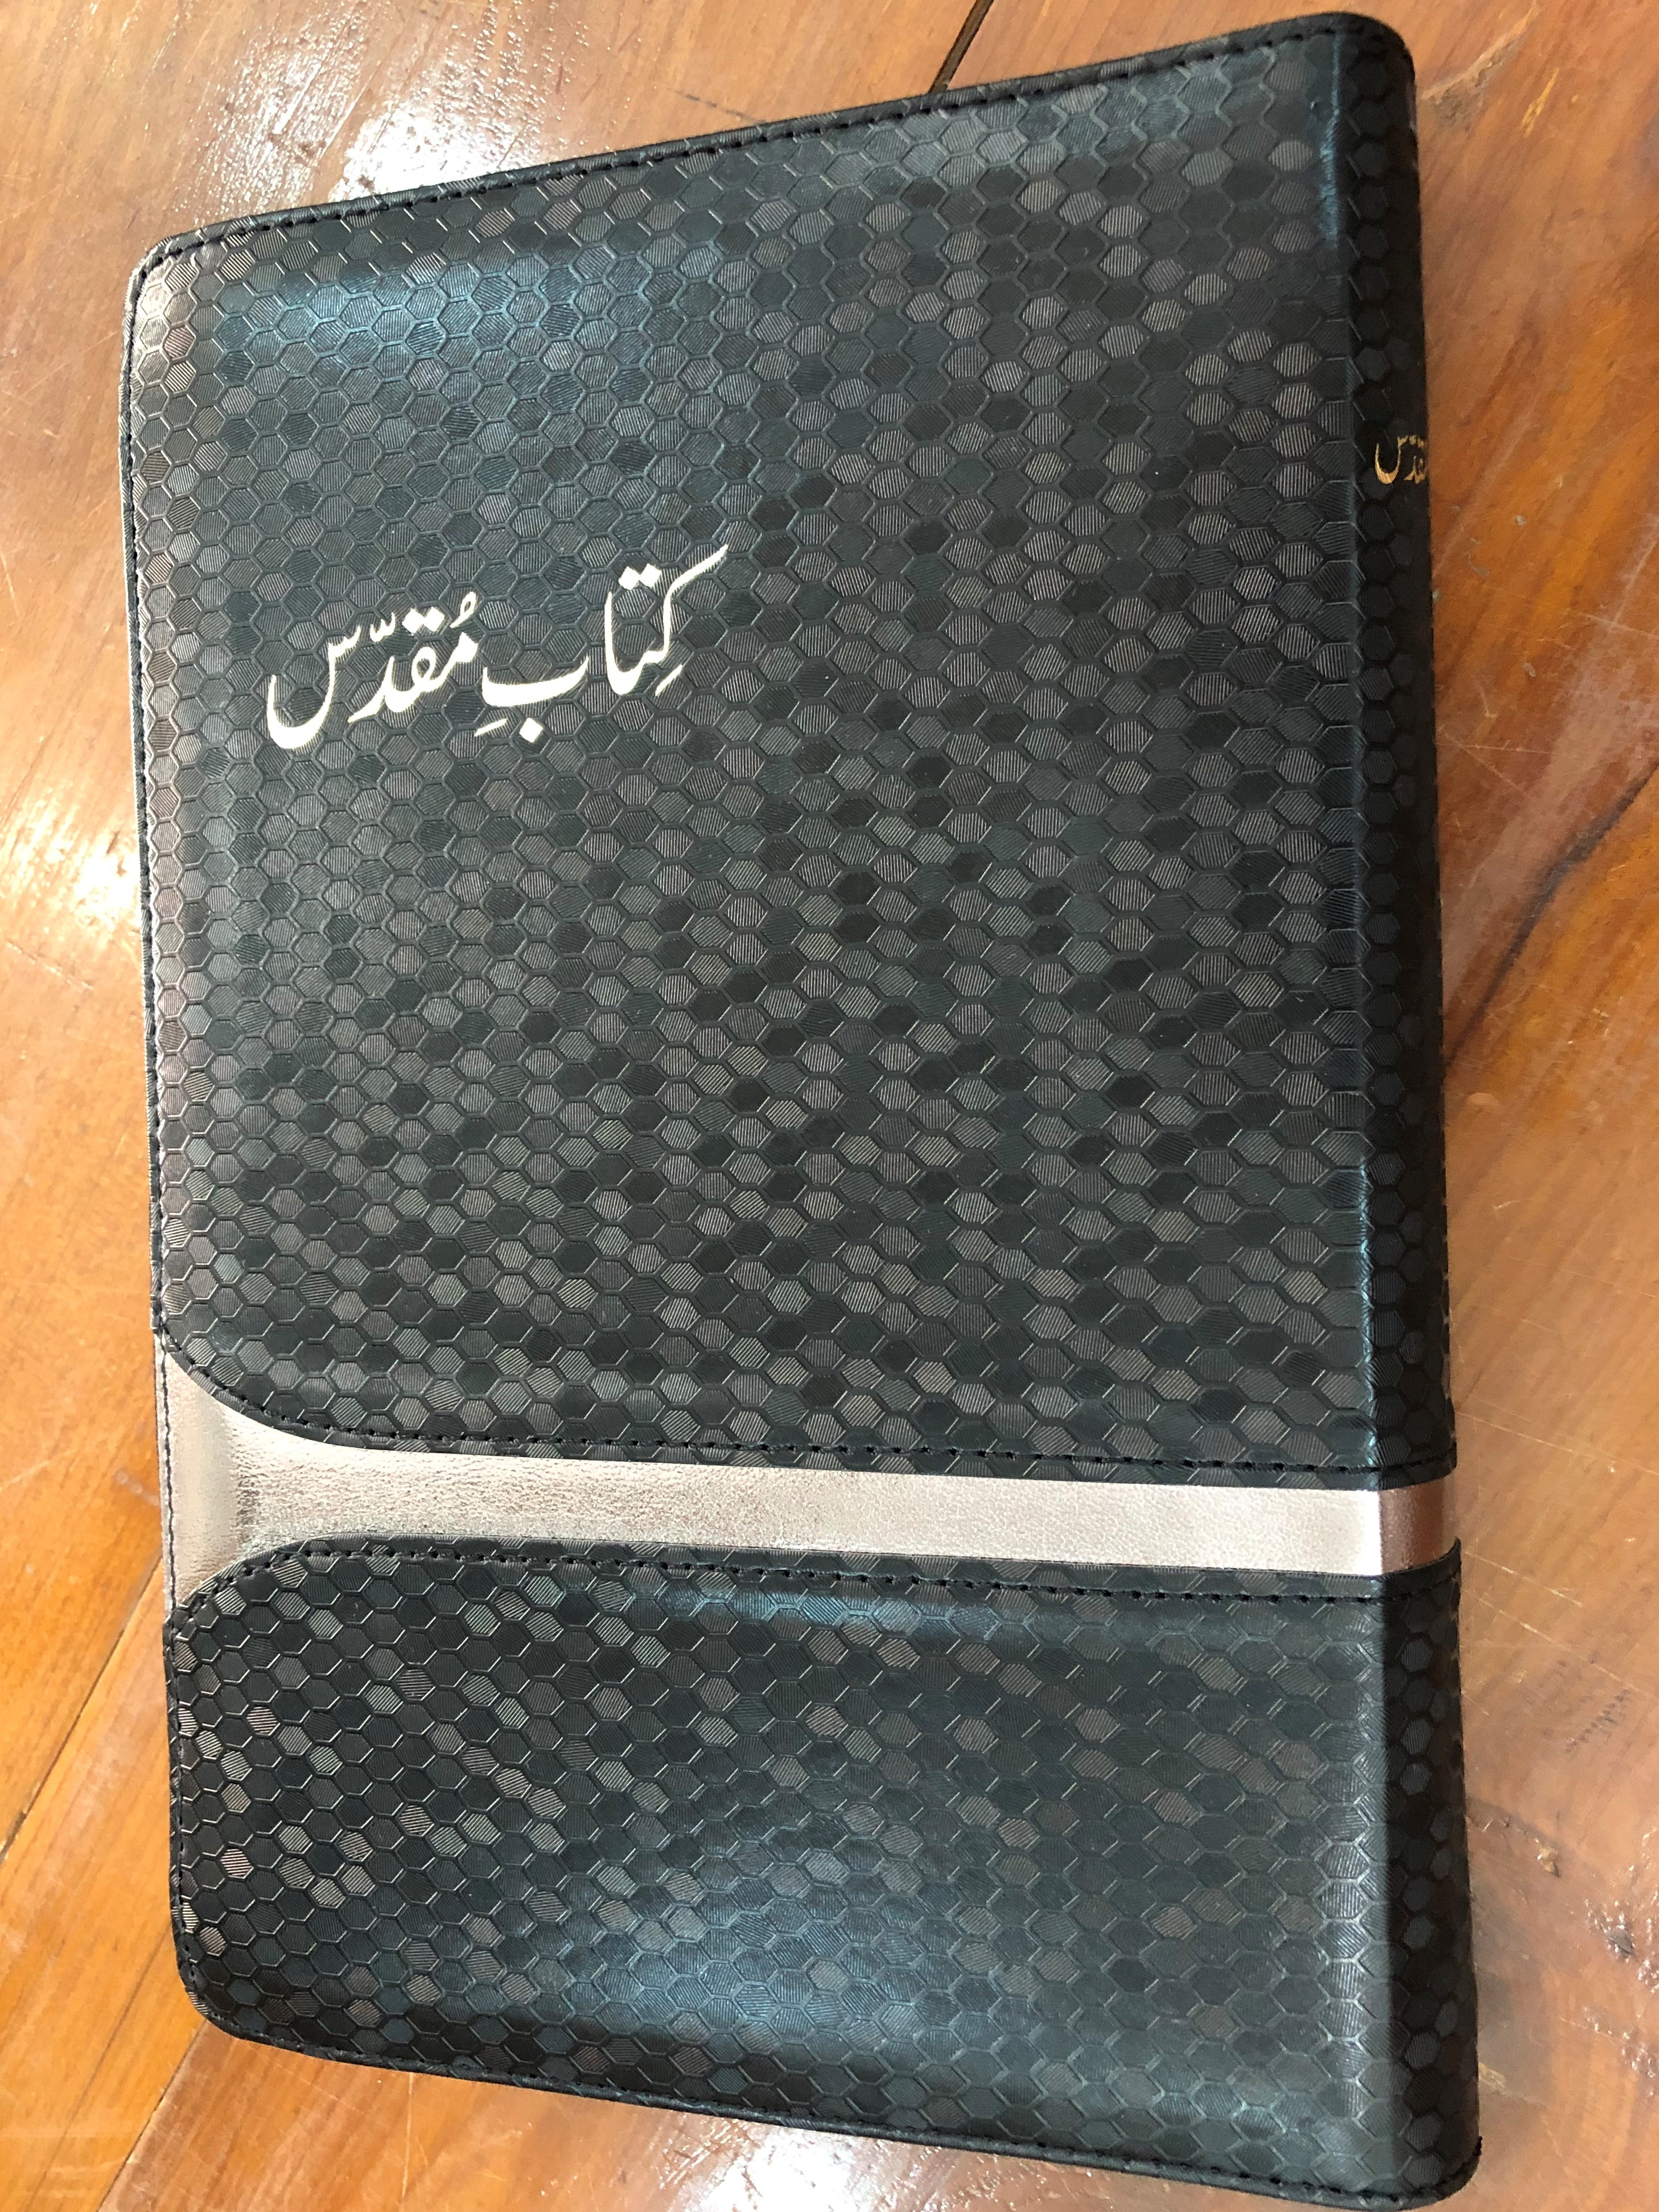 holy-bible-in-urdu-vinyl-pvc-bound-black-with-zipper-golden-edges-and-thumb-index-revised-version-pakistan-bible-society-2017-93p-series-1-.jpg